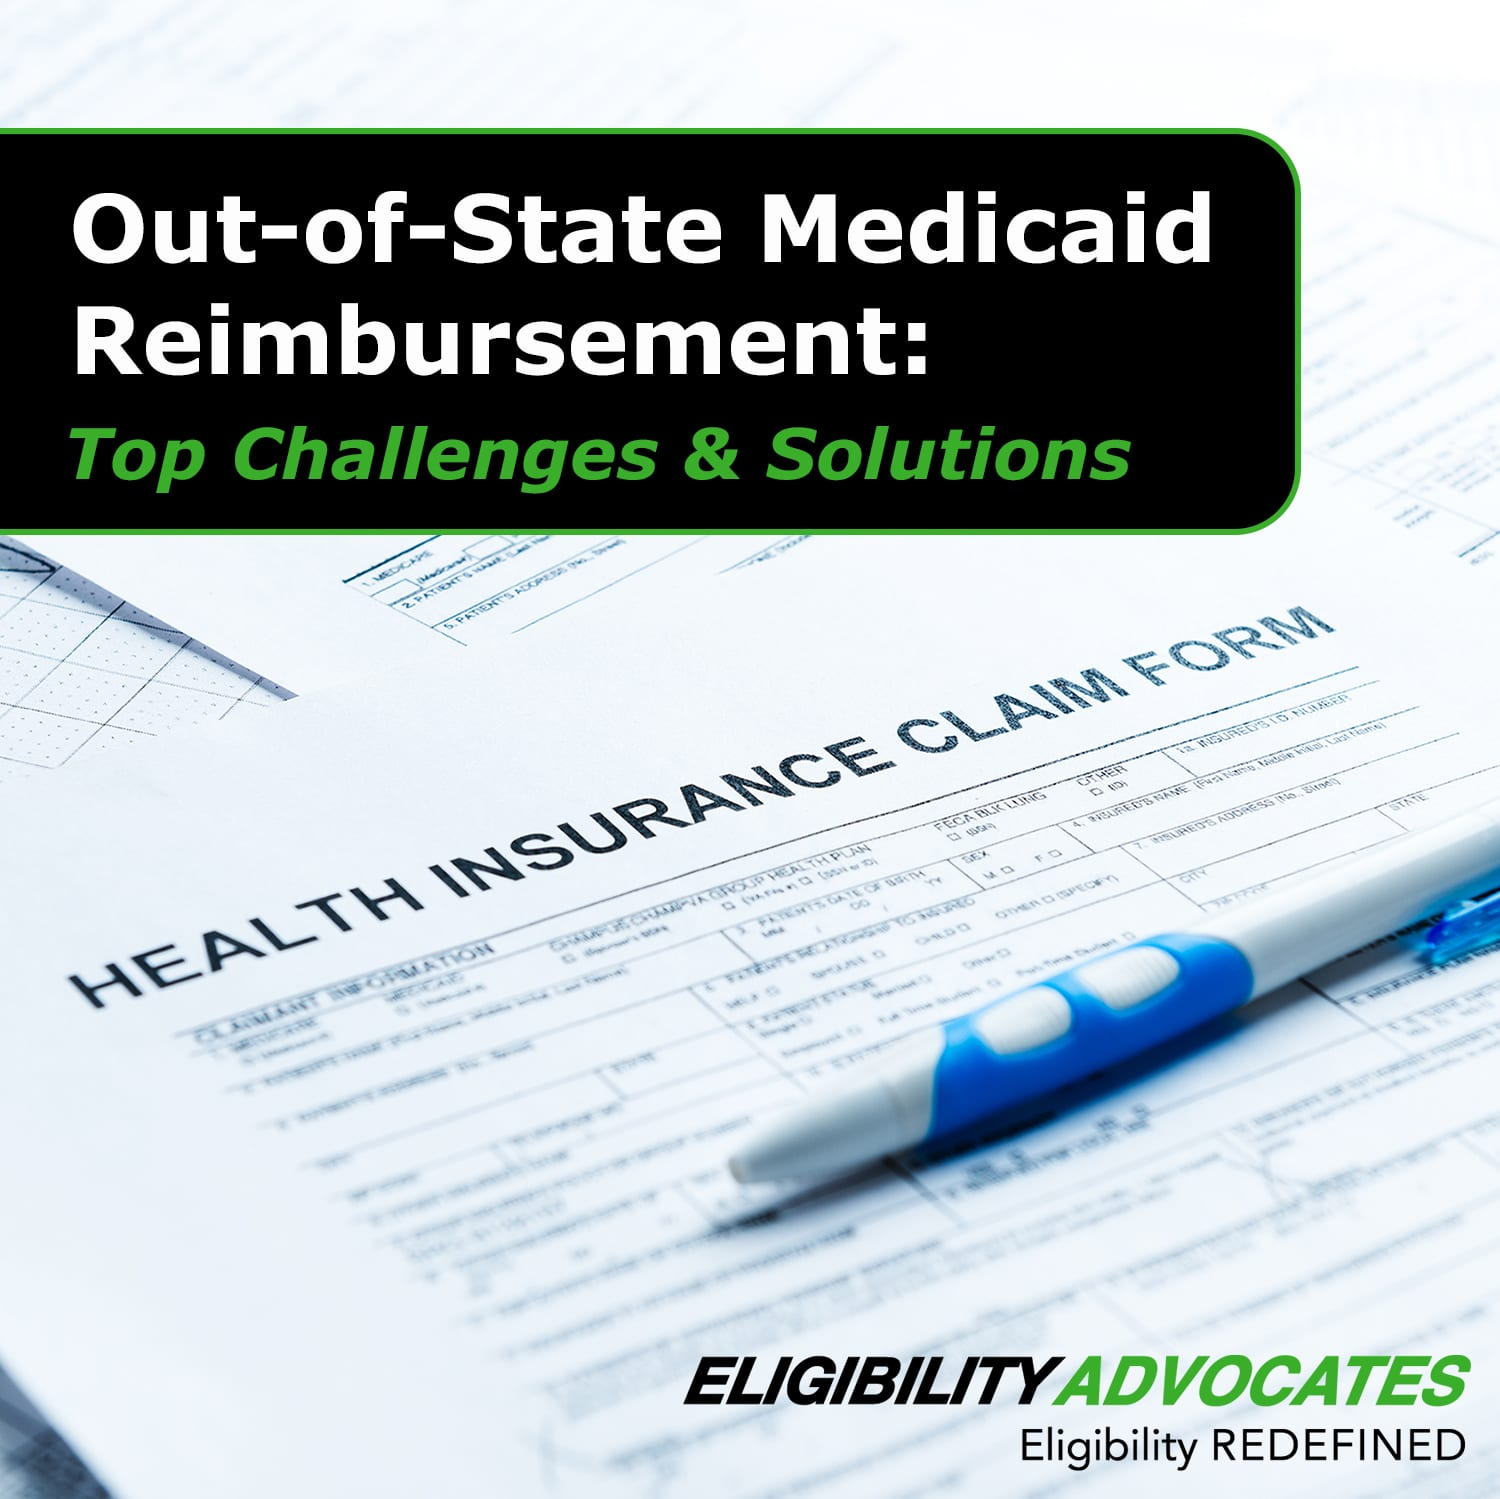 A health insurance claim form along with the blog title – Out-of-State Medicaid Reimbursement: Top Challenges & Solutions